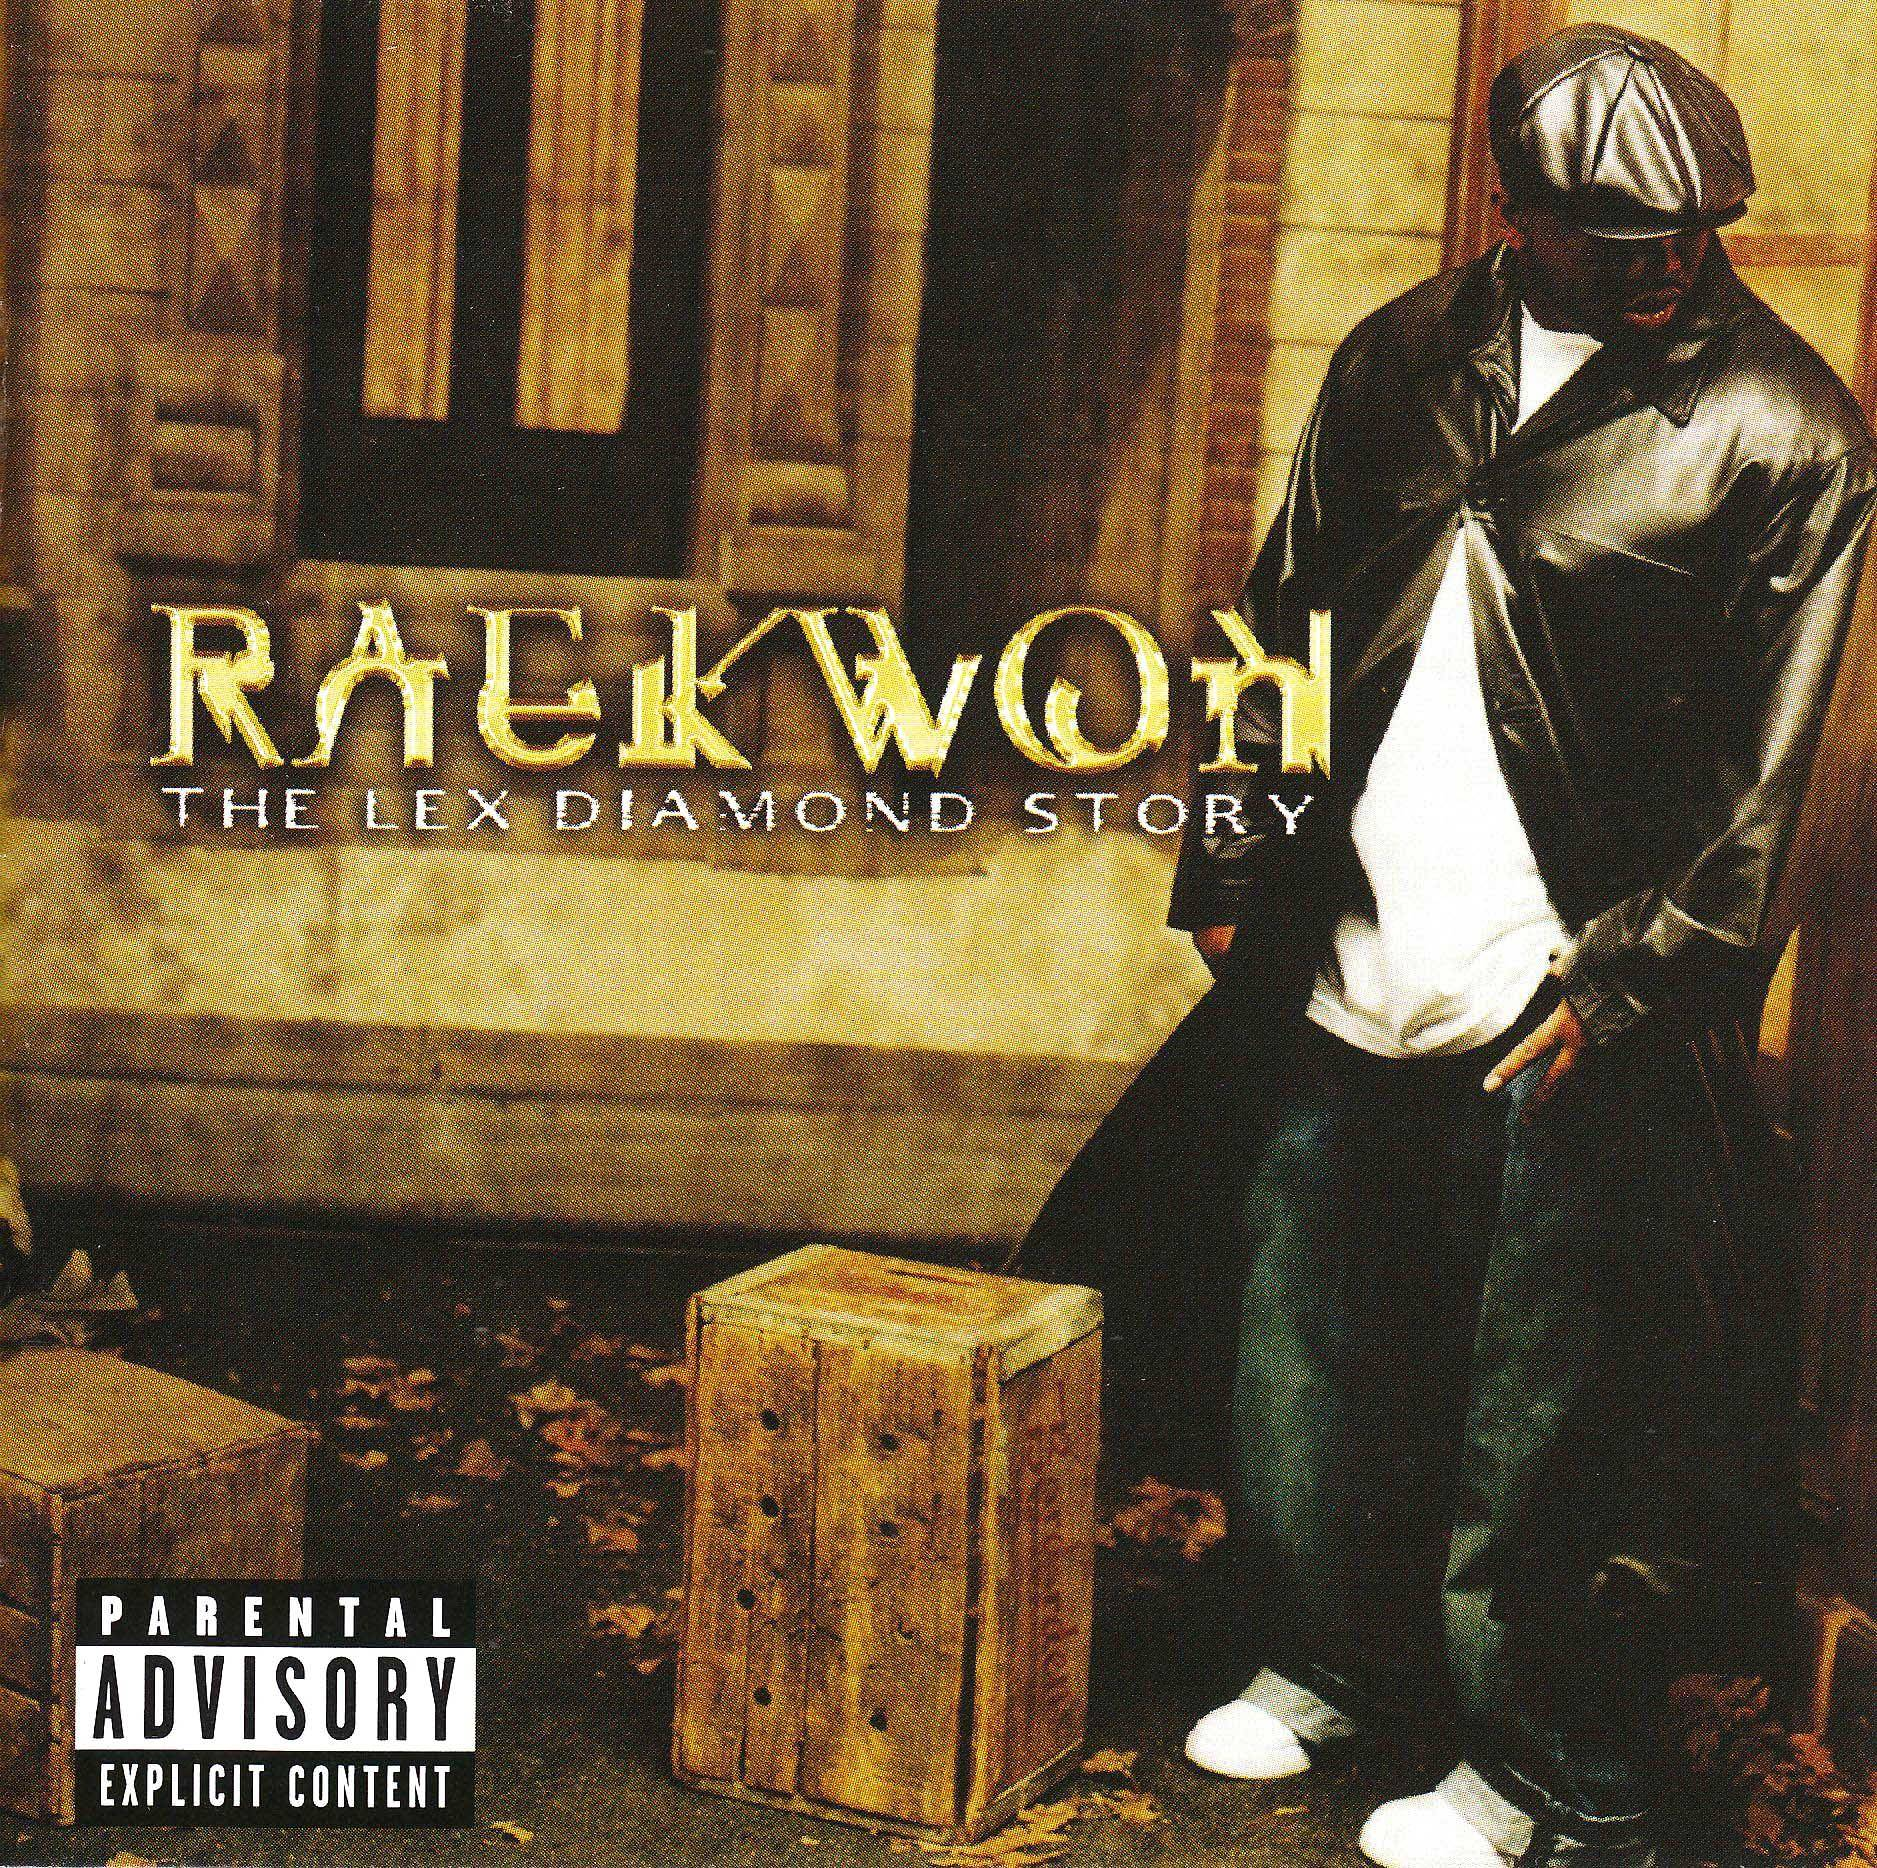 """20. Raekwon ? The Lex Diamond Story (2003) - The mission for Raekwon was simple: wipe out the memory of the static Immobilarity and return to Cuban Linx glory. While that doesn't totally come to fruition, it's clear that Rae is eager to re-establish his sublime lyrical standing. """"Ice Cream Pt. 2"""" fails to live up to the original's raw grandiosity. Luckily, tracks like """"Pit Bull Fights,"""" """"All Over Again"""" and the jaw-dropping """"Missing Watch,"""" which features a money-earning performance from Rae and Ghost, make up for such weak points. (Photo: Universal Records)"""